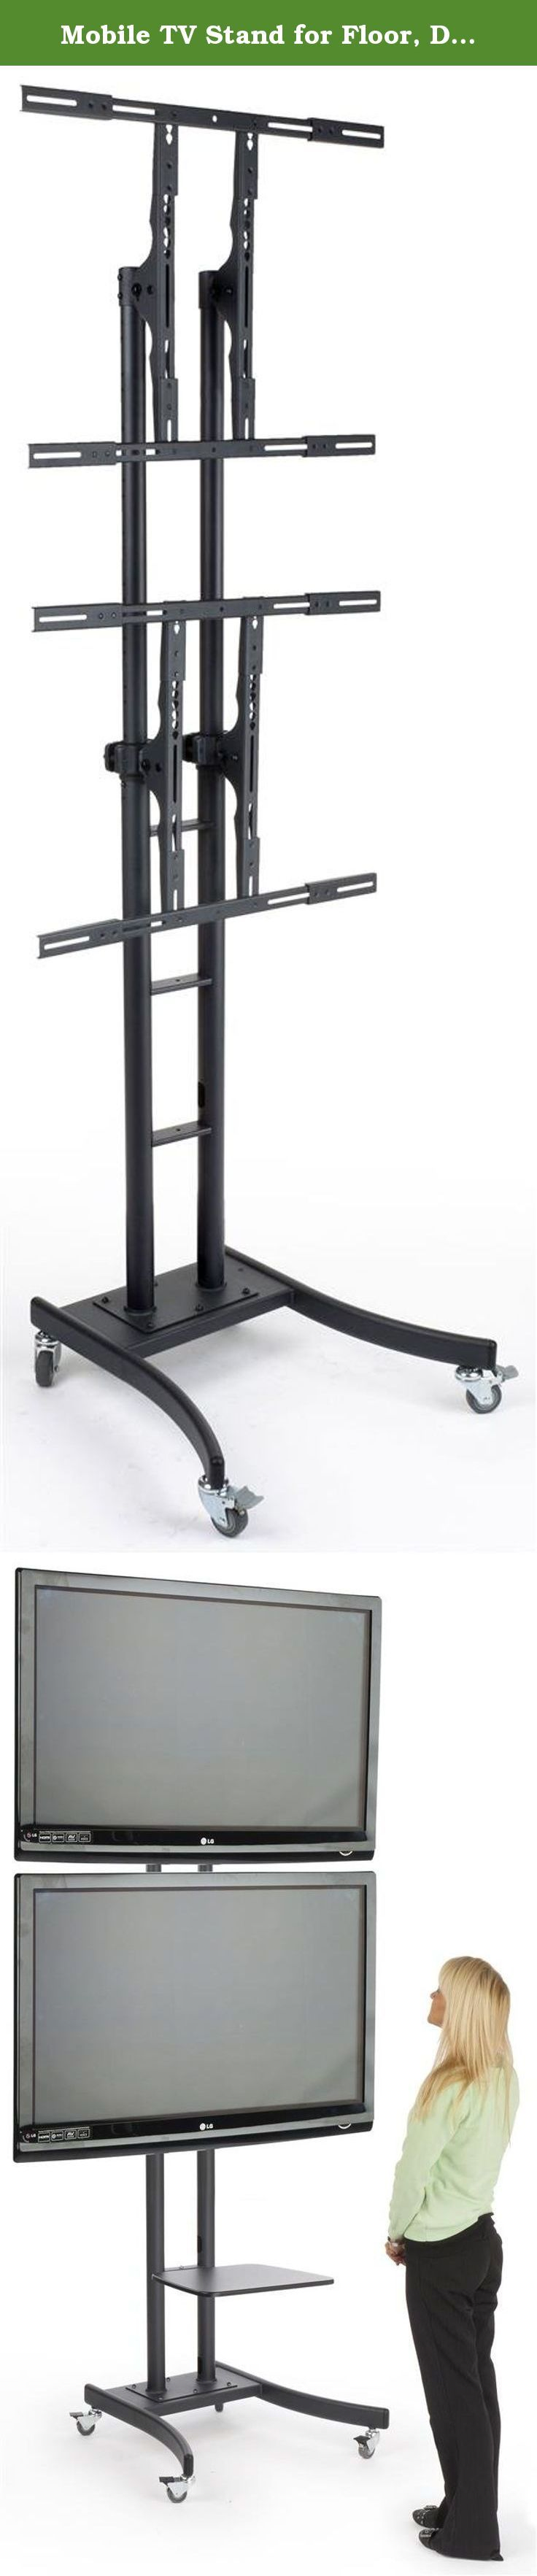 """Mobile TV Stand for Floor, Dual Monitor Mount for 32"""" to 65"""" Monitors. This mobile TV stand has 2 mounting brackets for display flat-screen monitors between 32"""" and 65"""" and up to 110 lbs. The floor-standing fixture for LCD televisions uses VESA mounting patterns to match most brand names and manufacturers' models. The brackets are compatible with the following: 200x200, 300x300, 400x200, 400x300, 400x400 and 600x400. This mobile TV stand is height-adjustable with its telescoping posts. In..."""